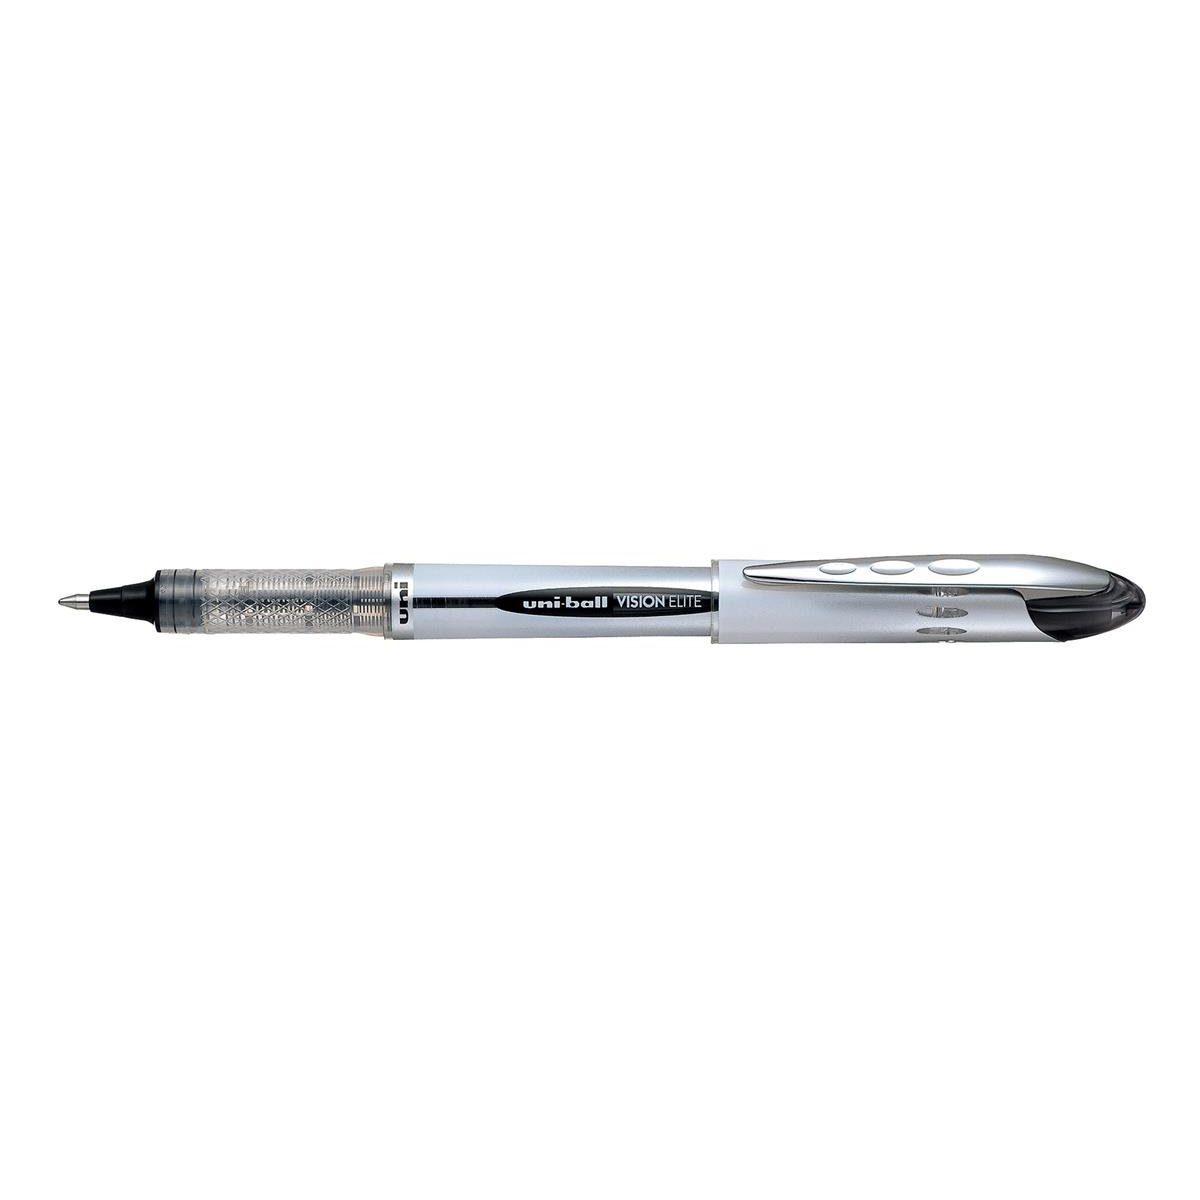 Uni-ball UB200 Vision Elite Rollerball Pen 0.8mm Tip Black Ref 707539000 [Pack 12]